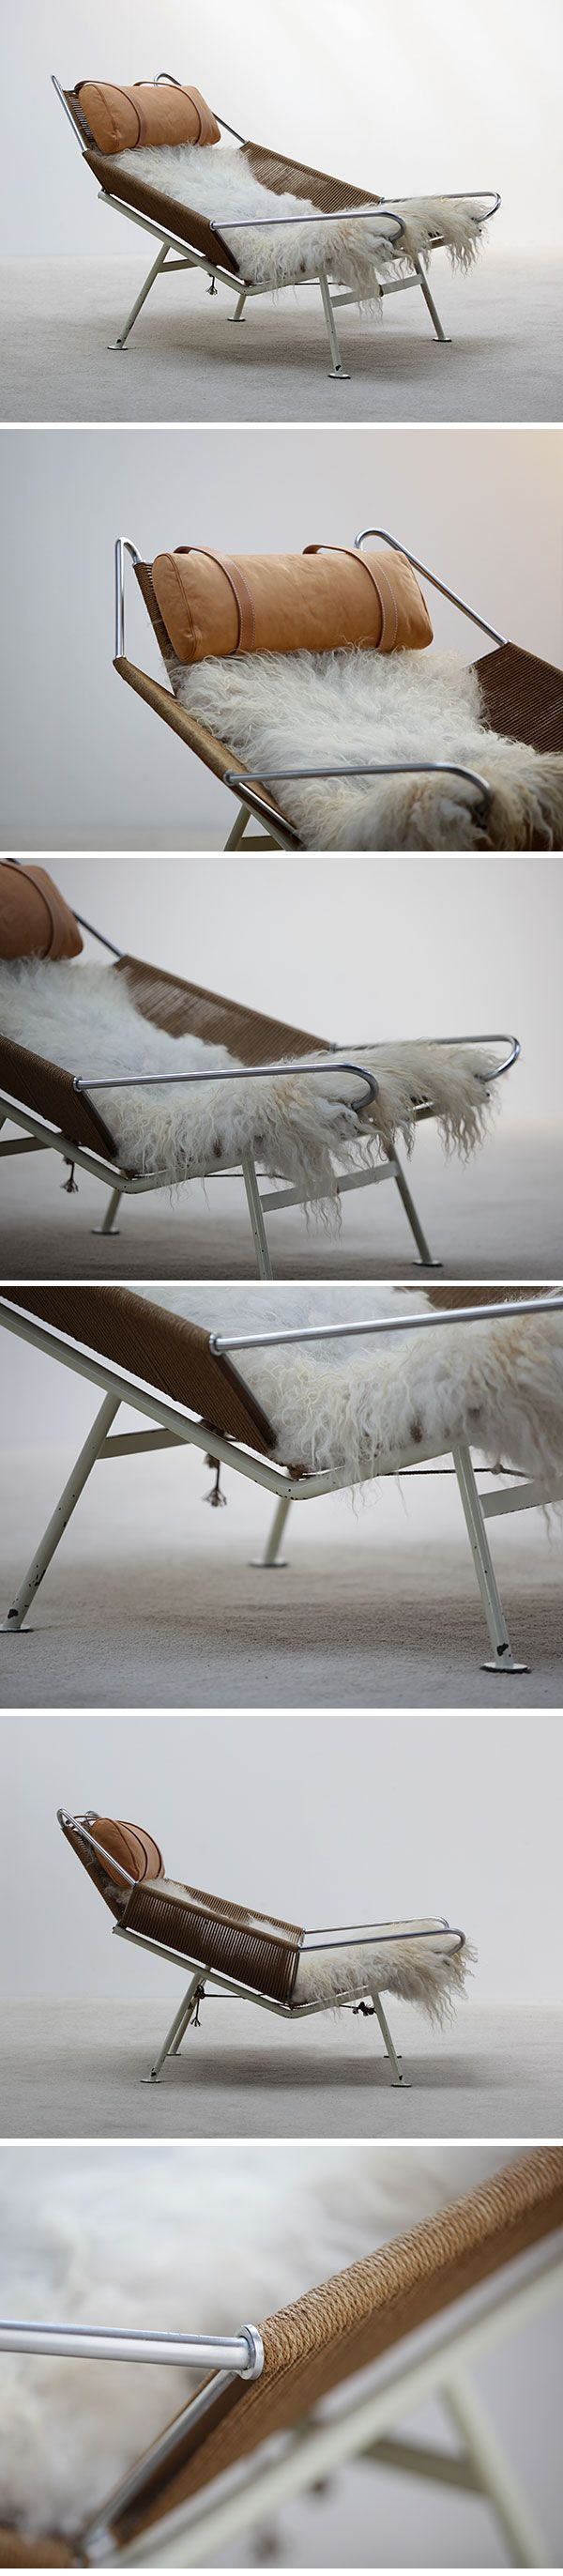 Relaxation. Hans Wegner's Flag Halyard Chair. Love these unconventional textures and their effortless joining